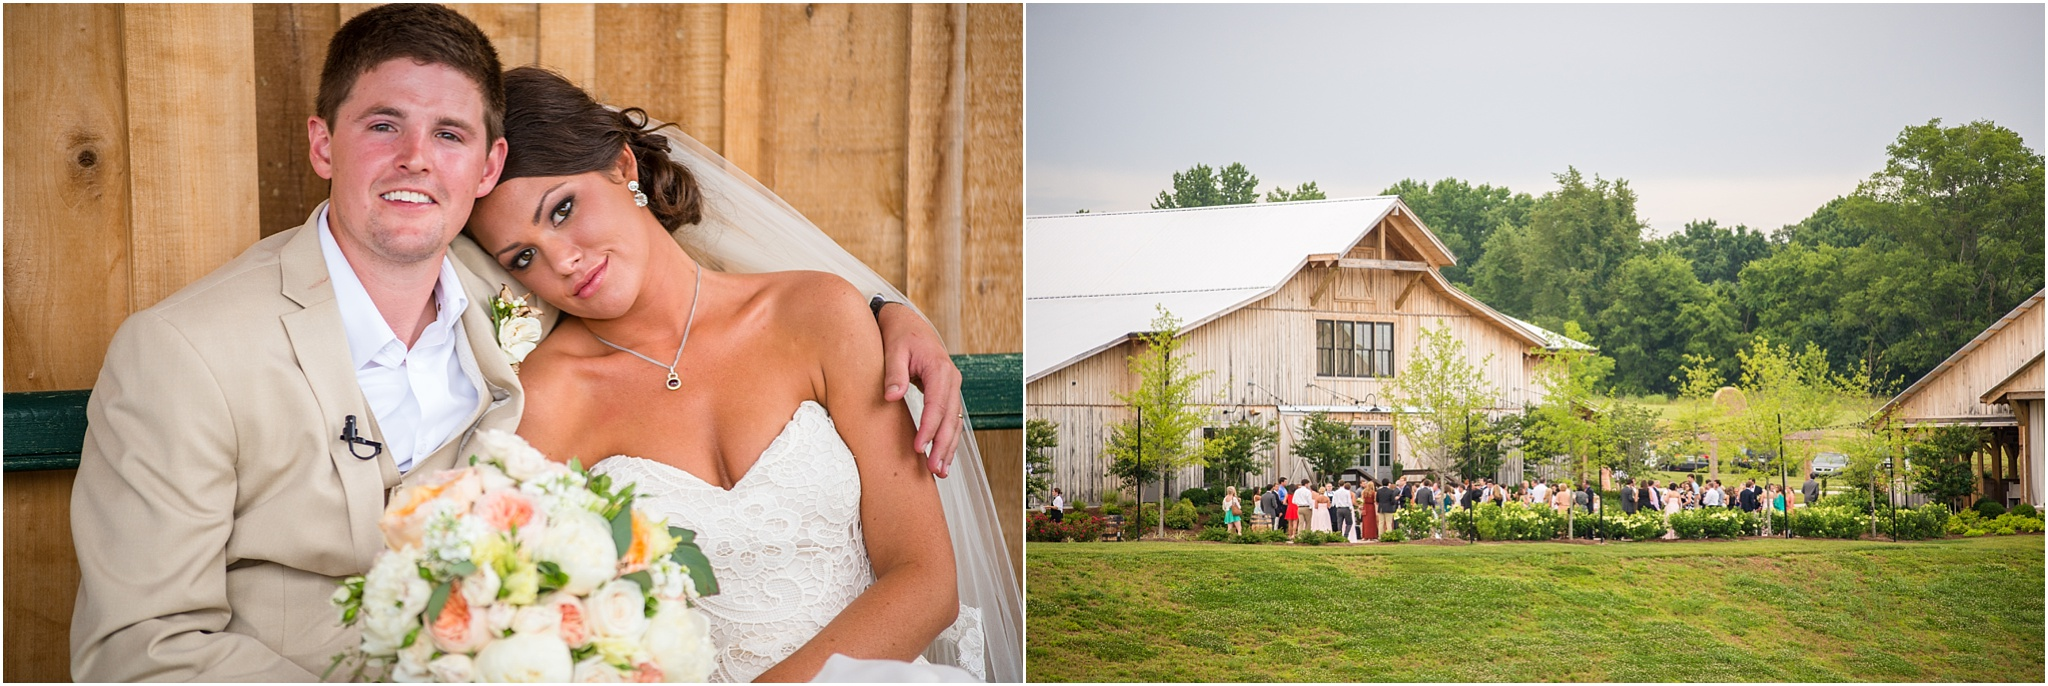 Greg Smit Photography Nashville wedding photographer Mint Springs Farm 18